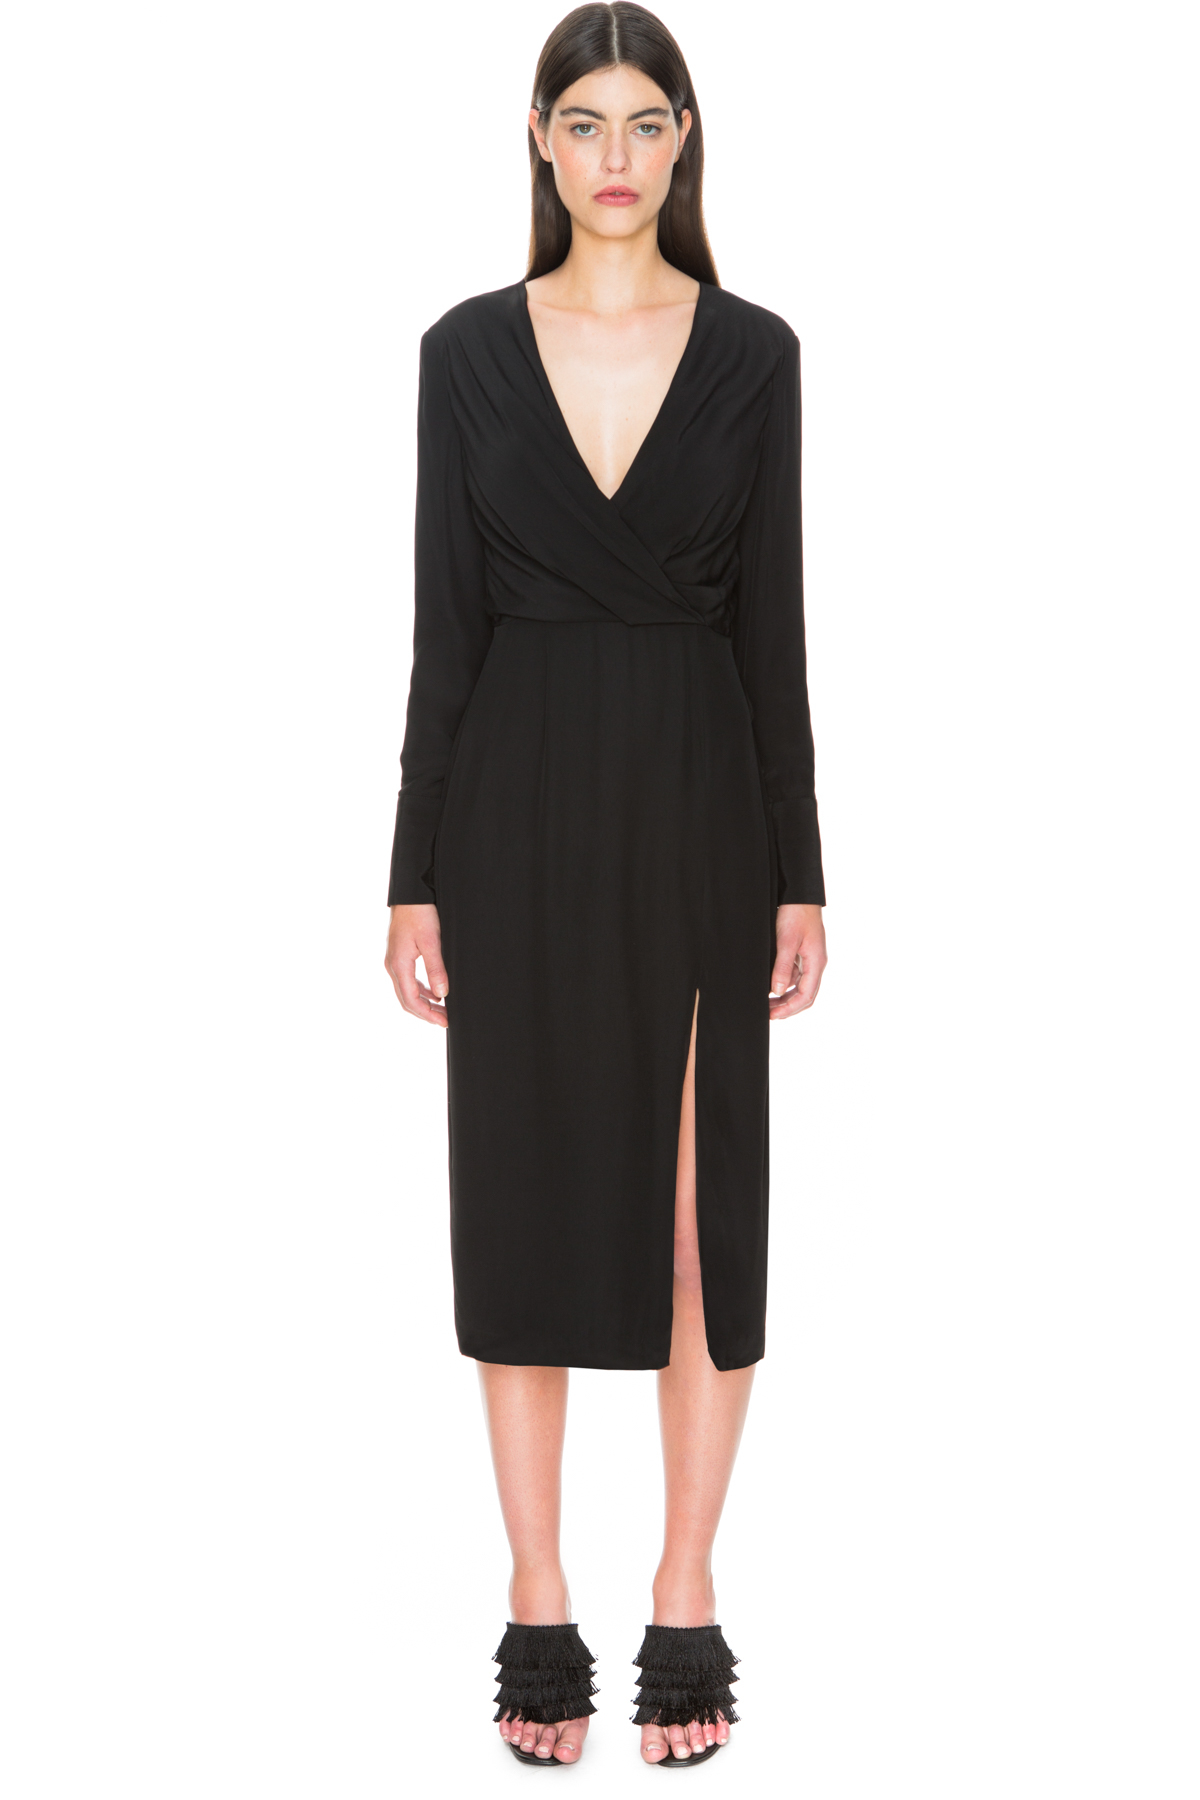 C meo collective bedroom wall long sleeve dress in black for C meo bedroom wall dress